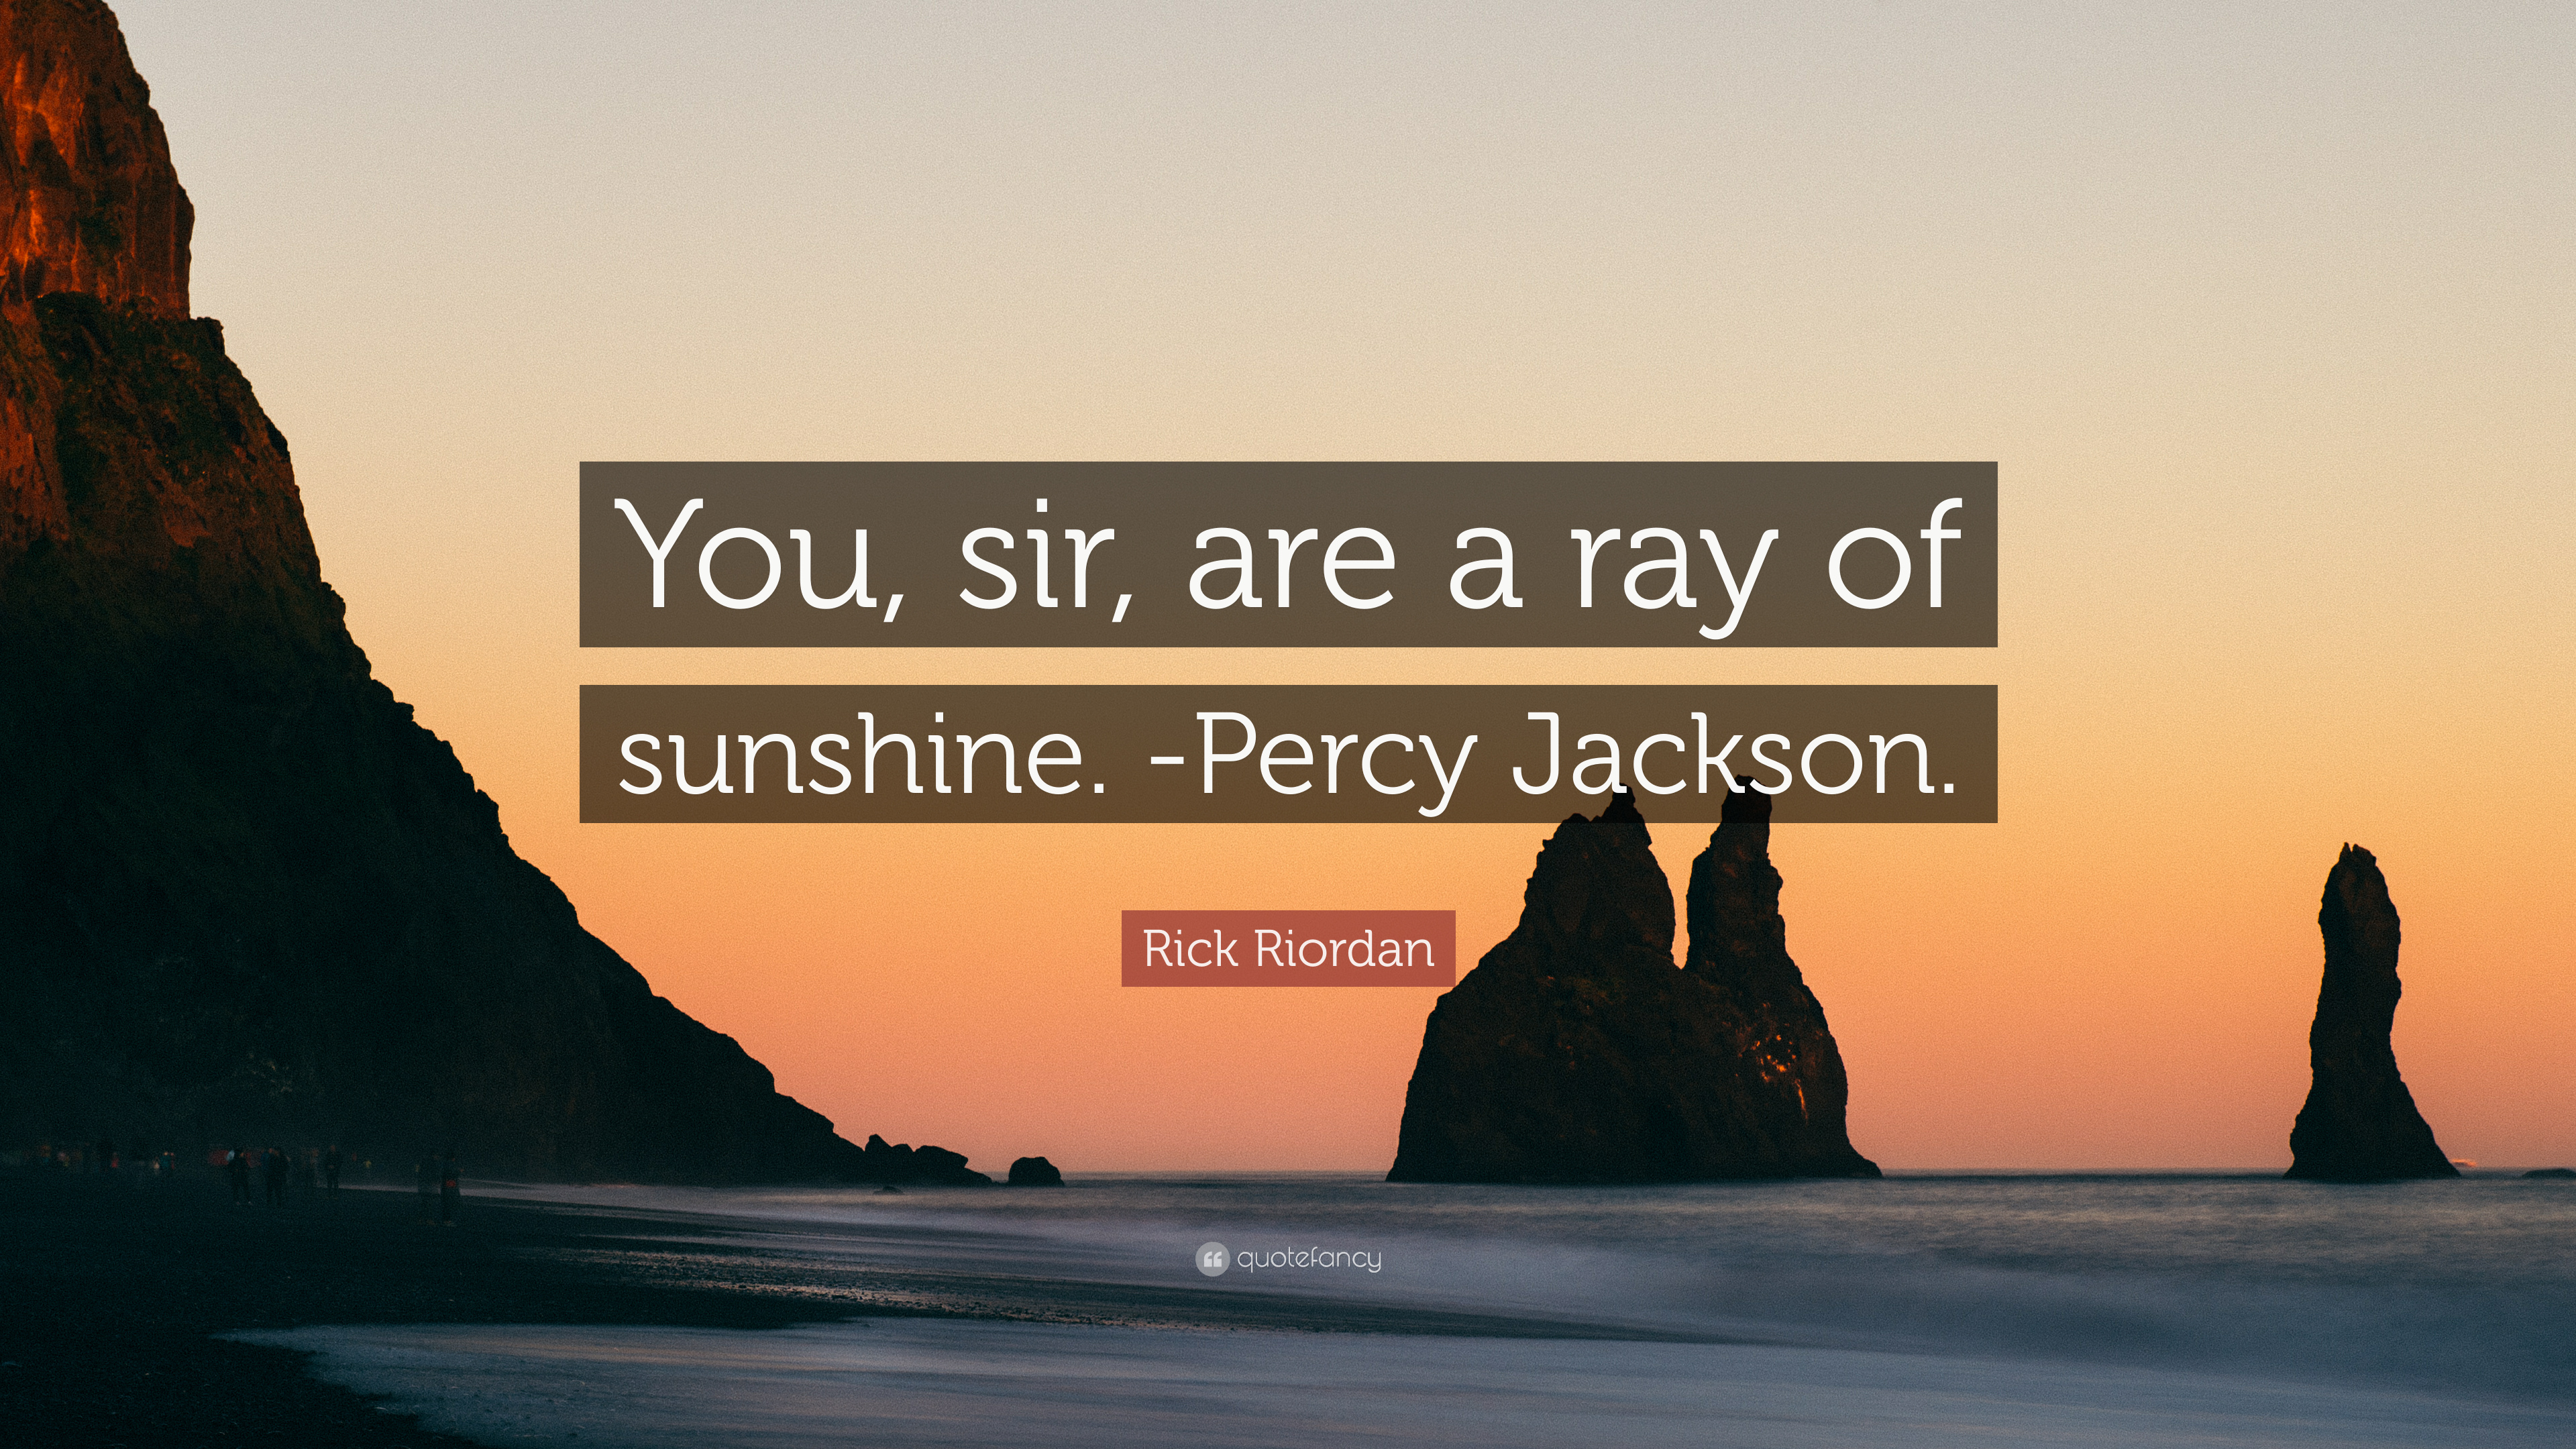 Rick riordan quote you sir are a ray of sunshine percy jackson rick riordan quote you sir are a ray of sunshine voltagebd Image collections